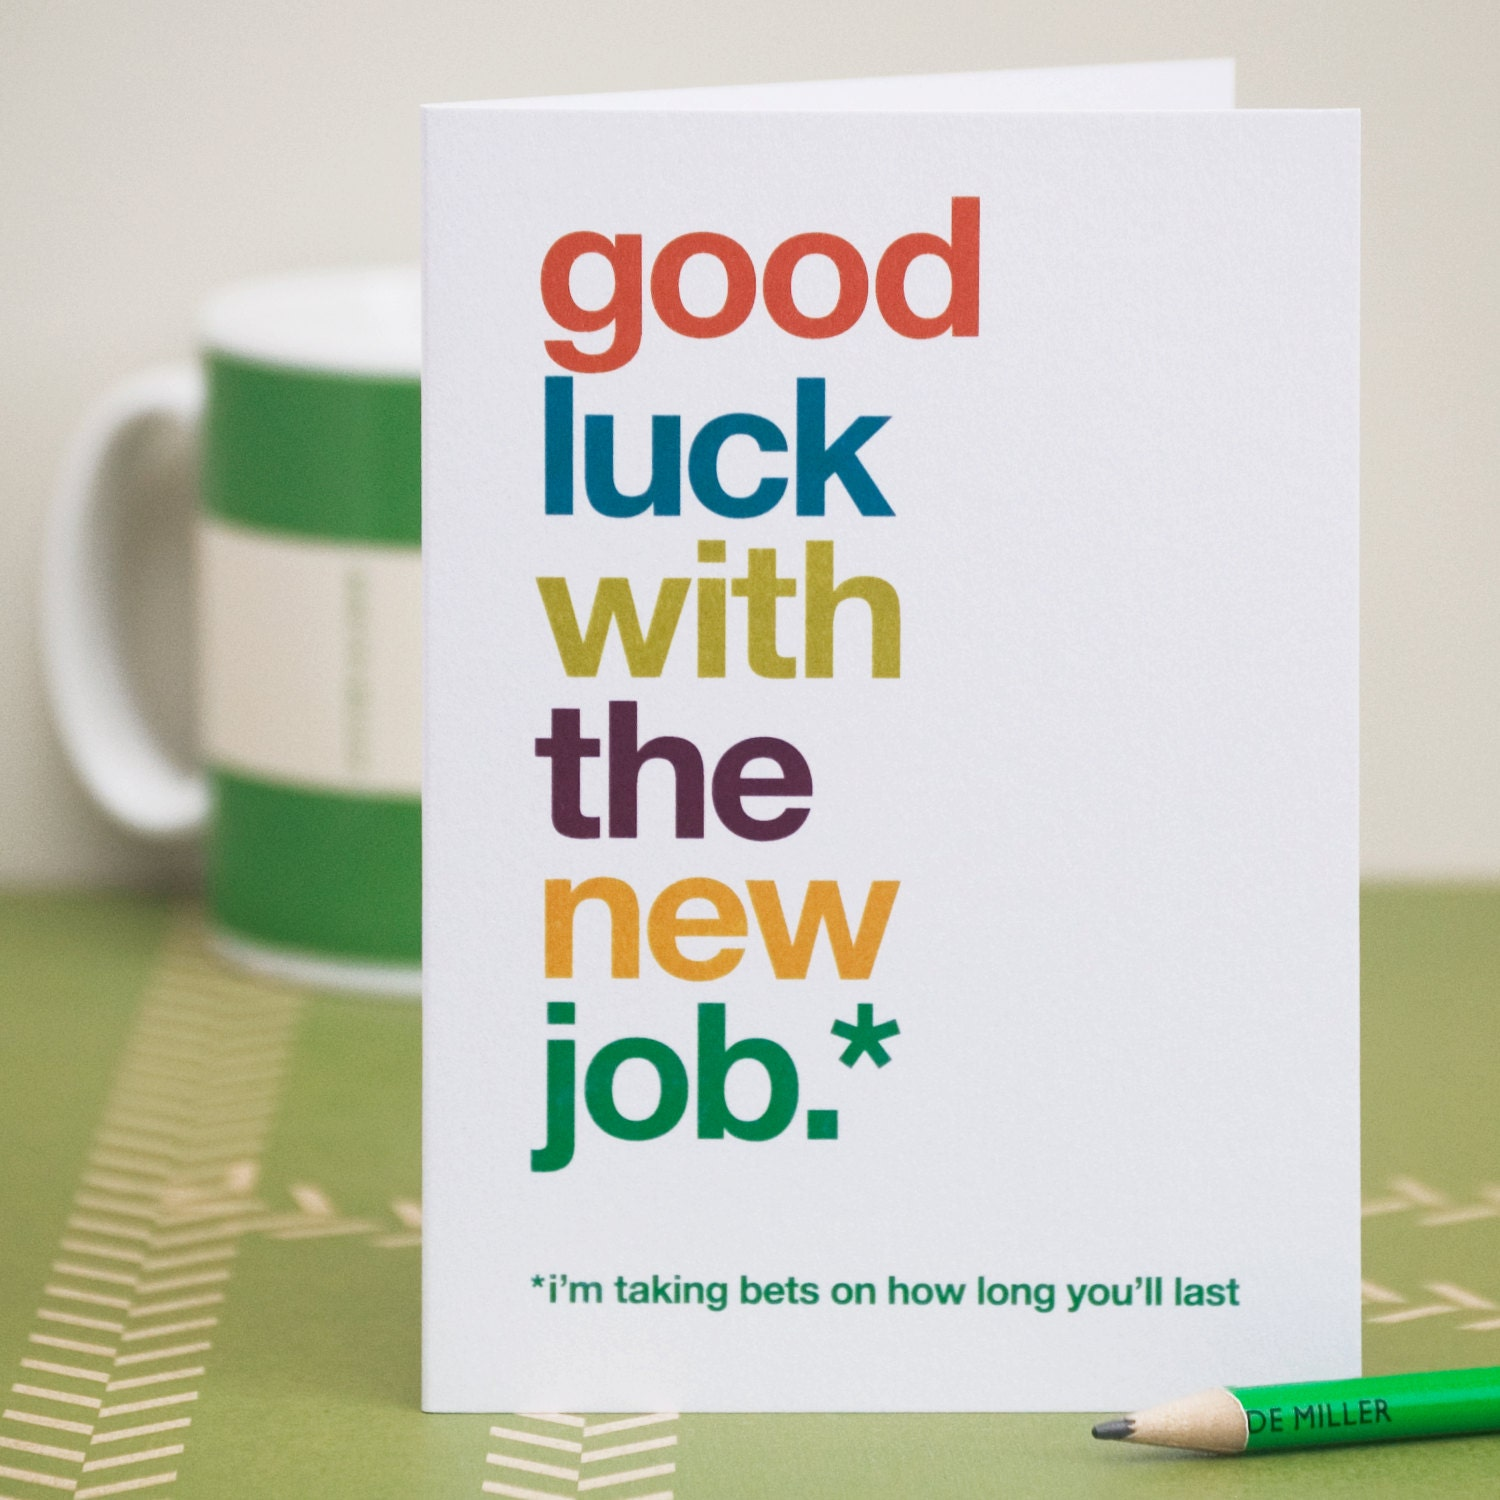 How To Have Good Luck Fair Of Funny Good Luck On New Job Cards Pictures